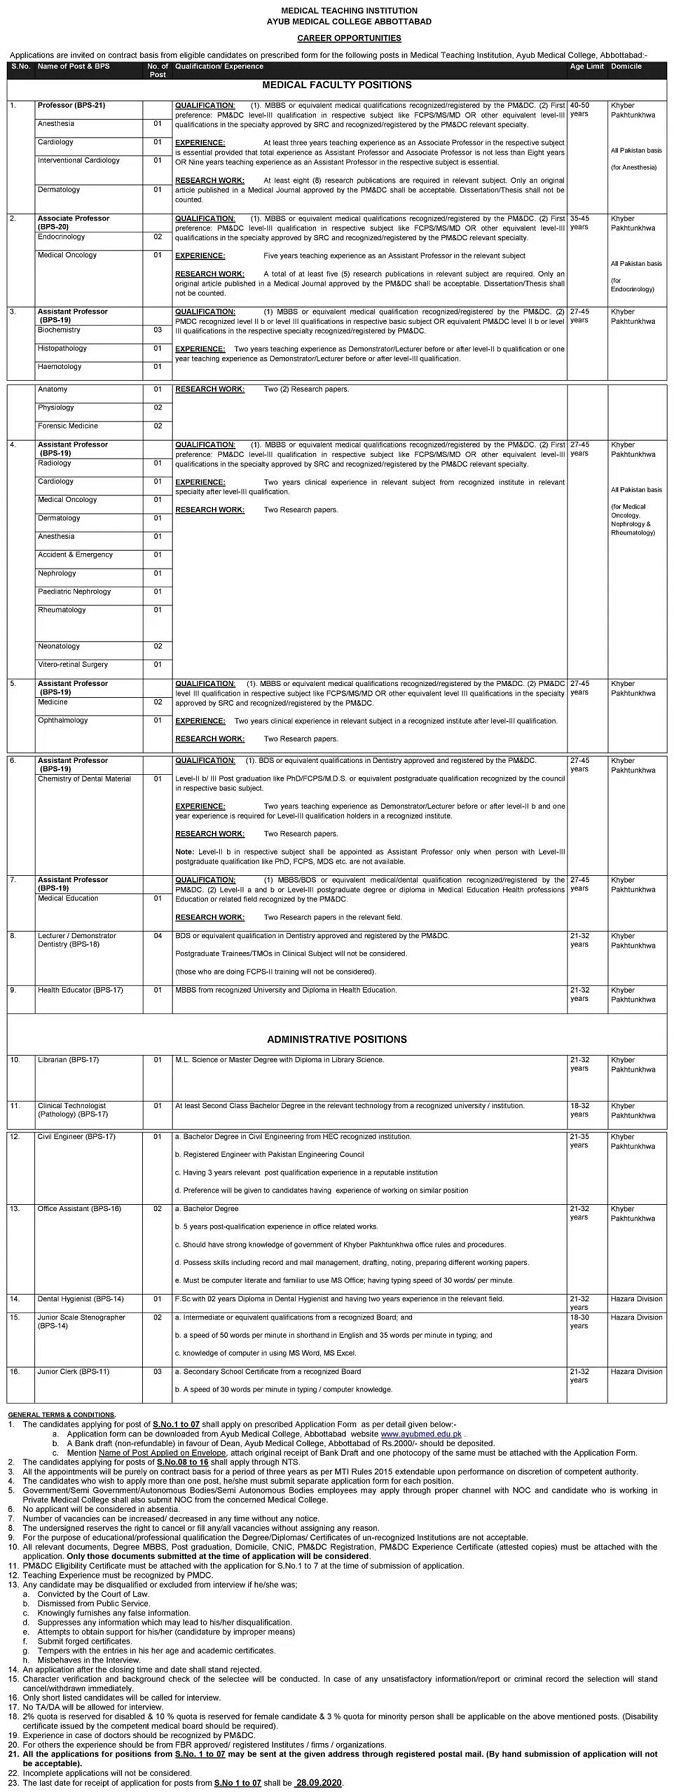 Ayub Medical Teaching Institution Medical Administrative Jobs NTS Roll No Slip